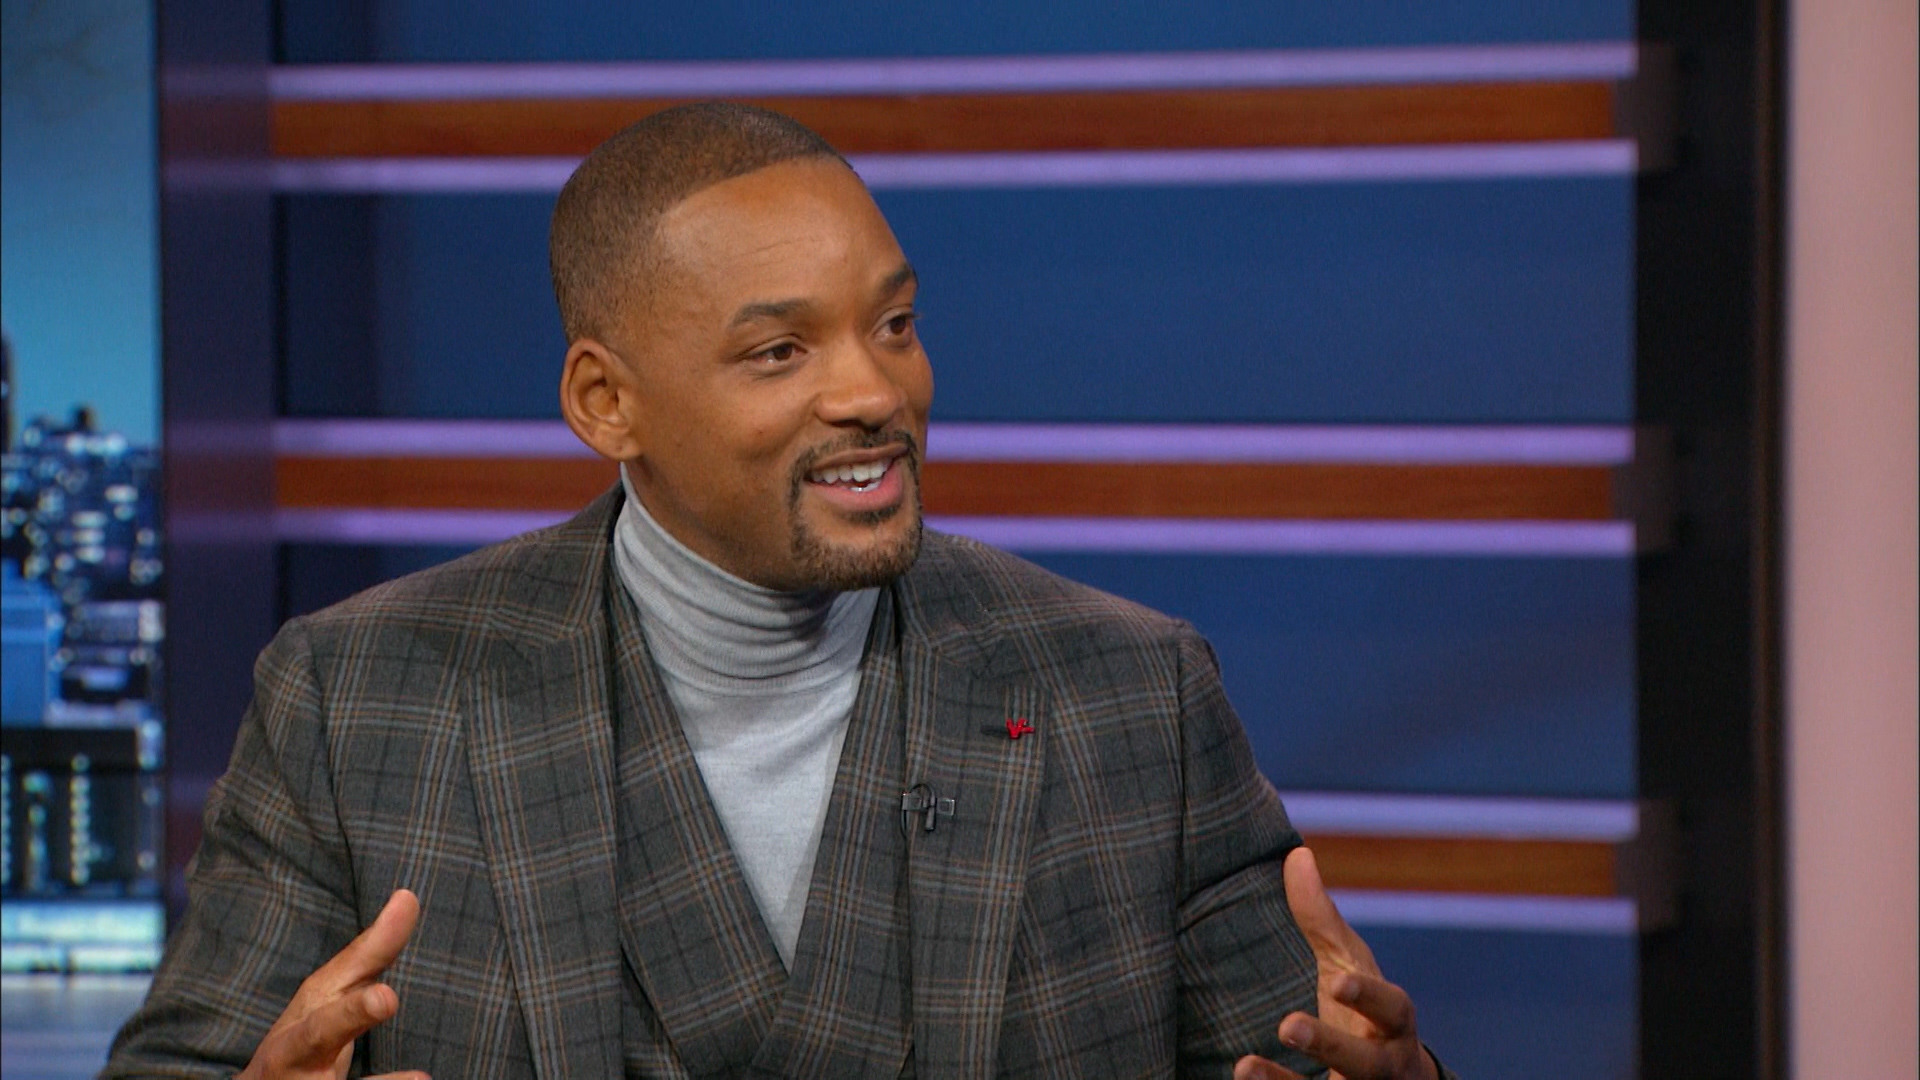 - WILL SMITH - GOING UP AGAINST THE NFL IN